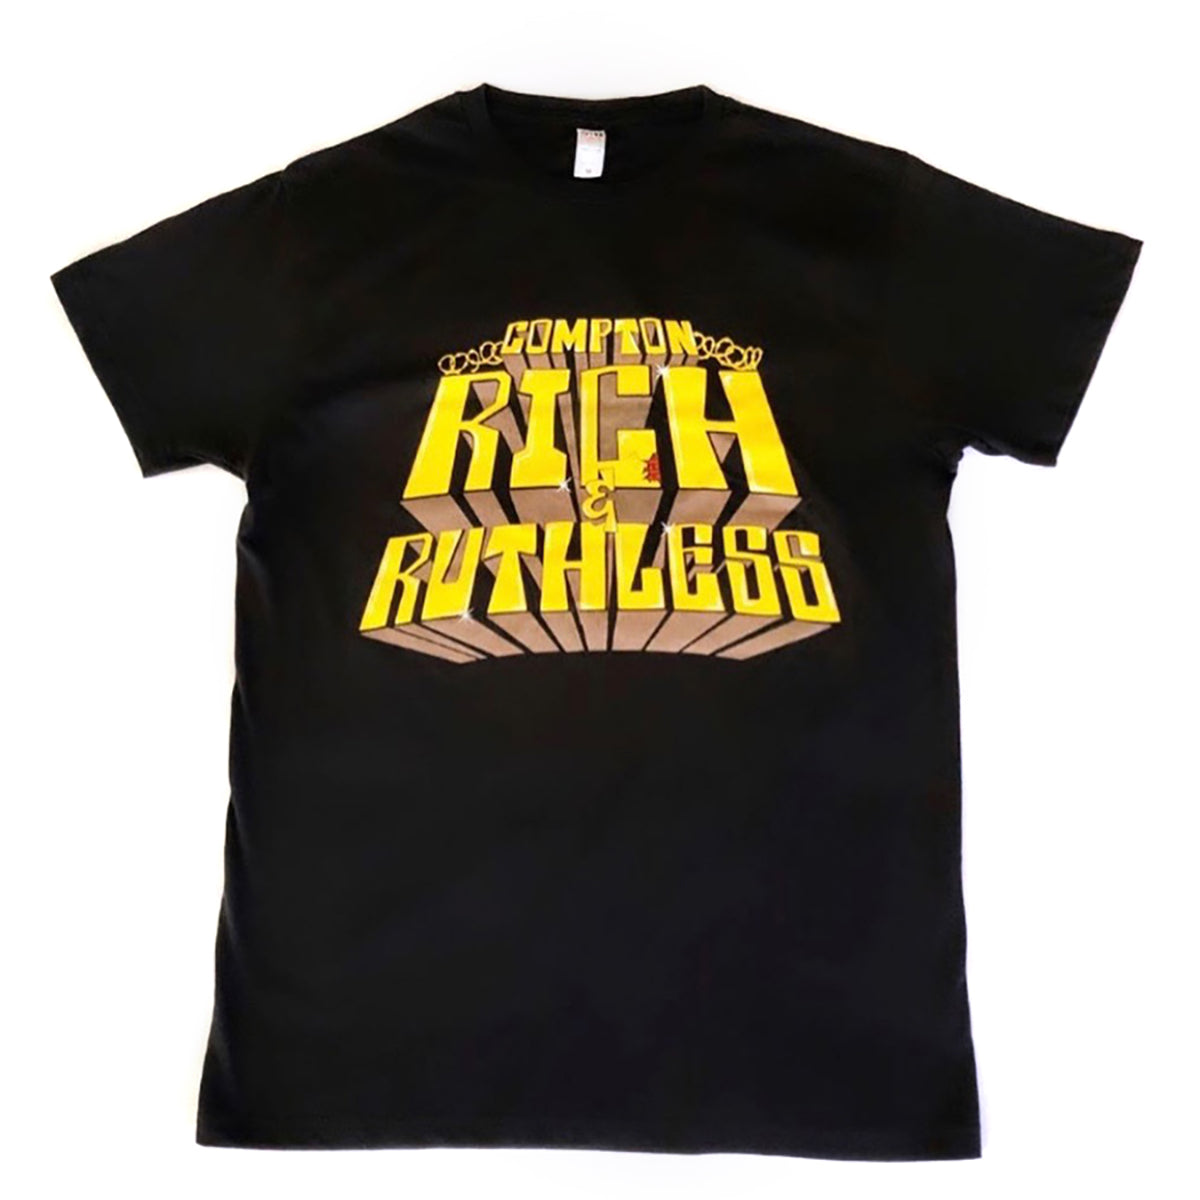 Compton Rich & Ruthless T-Shirt